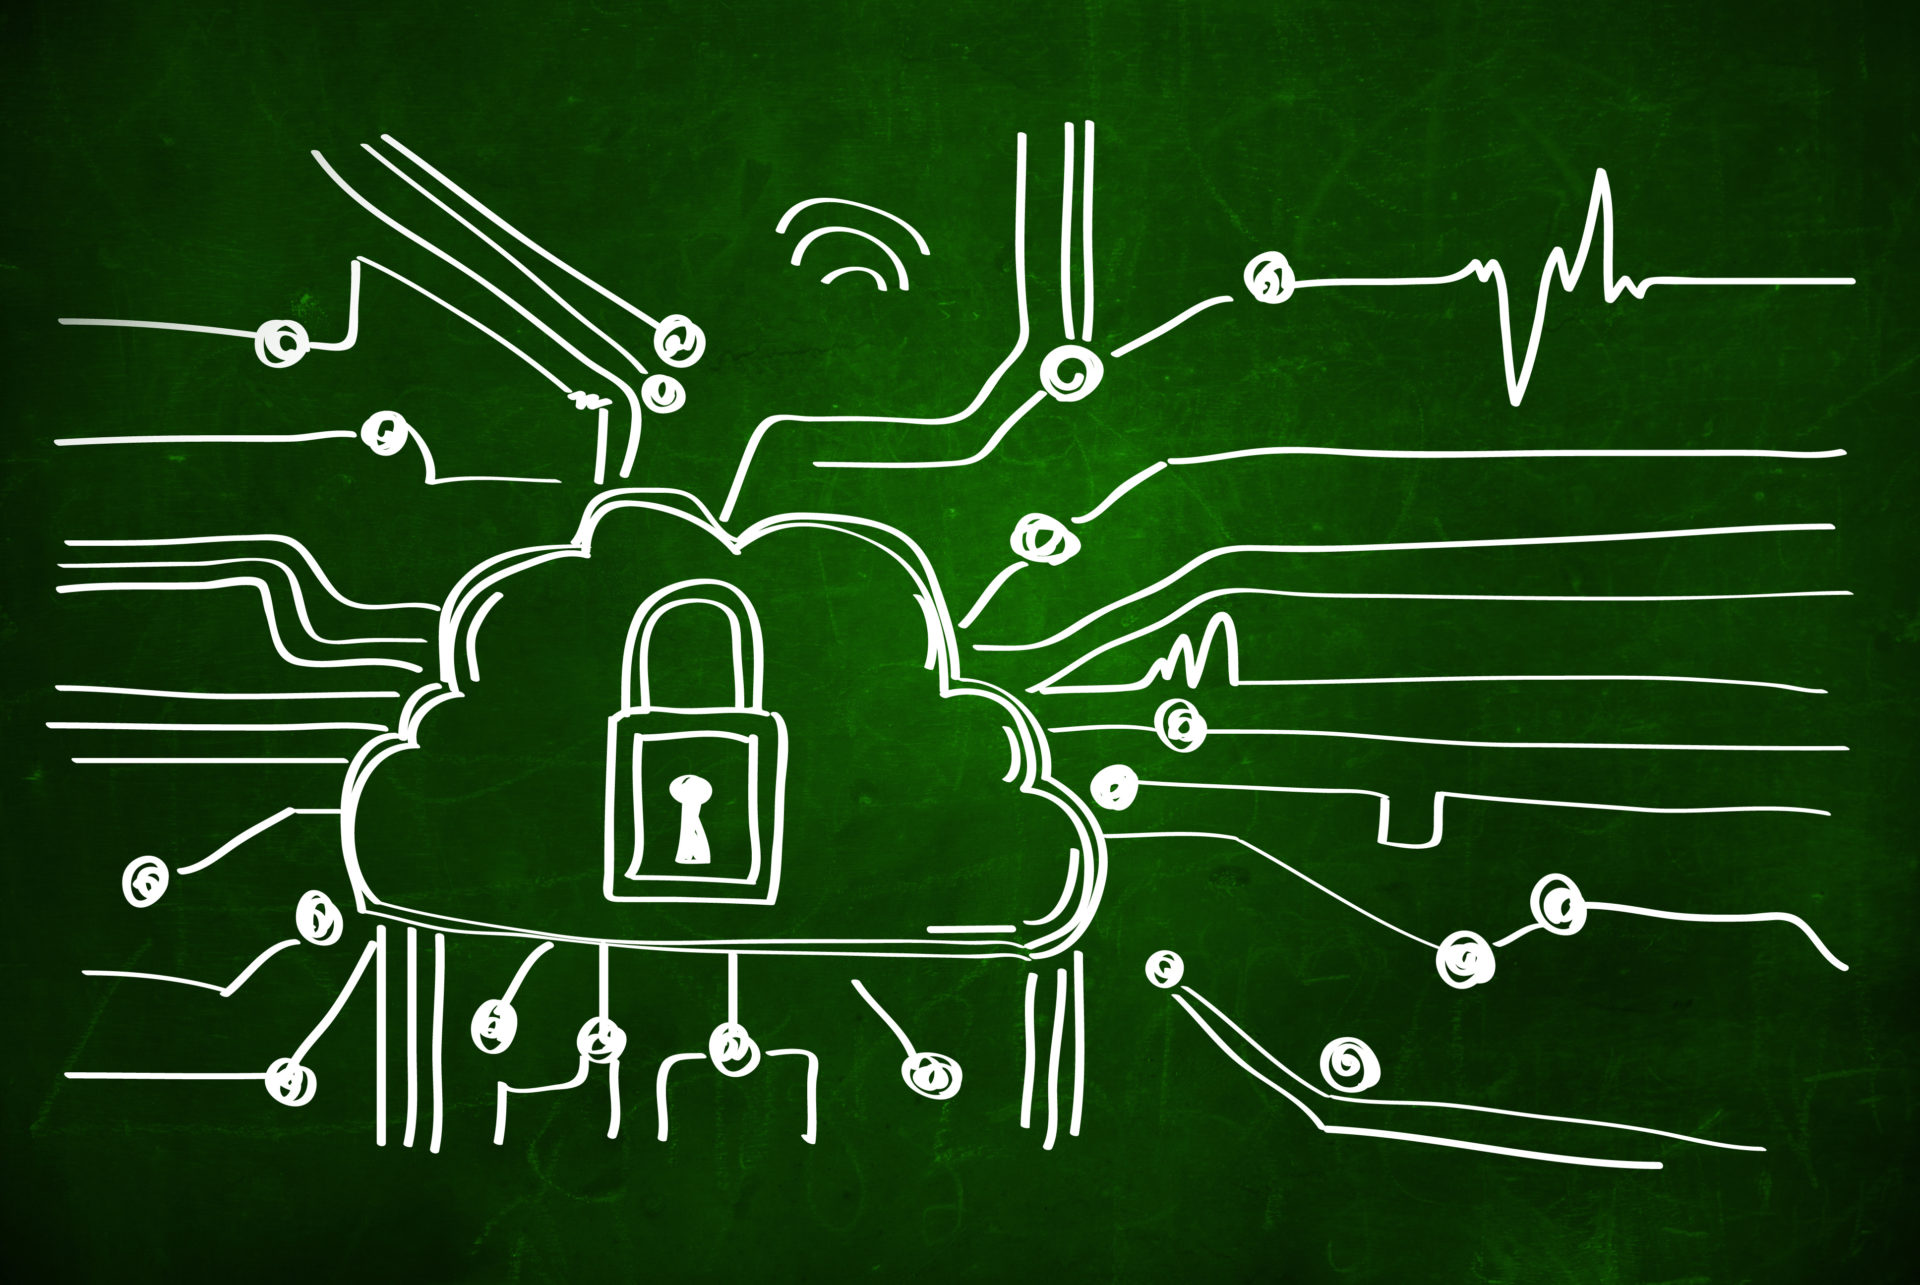 PCM data breach highlights risks of third-party cloud providers